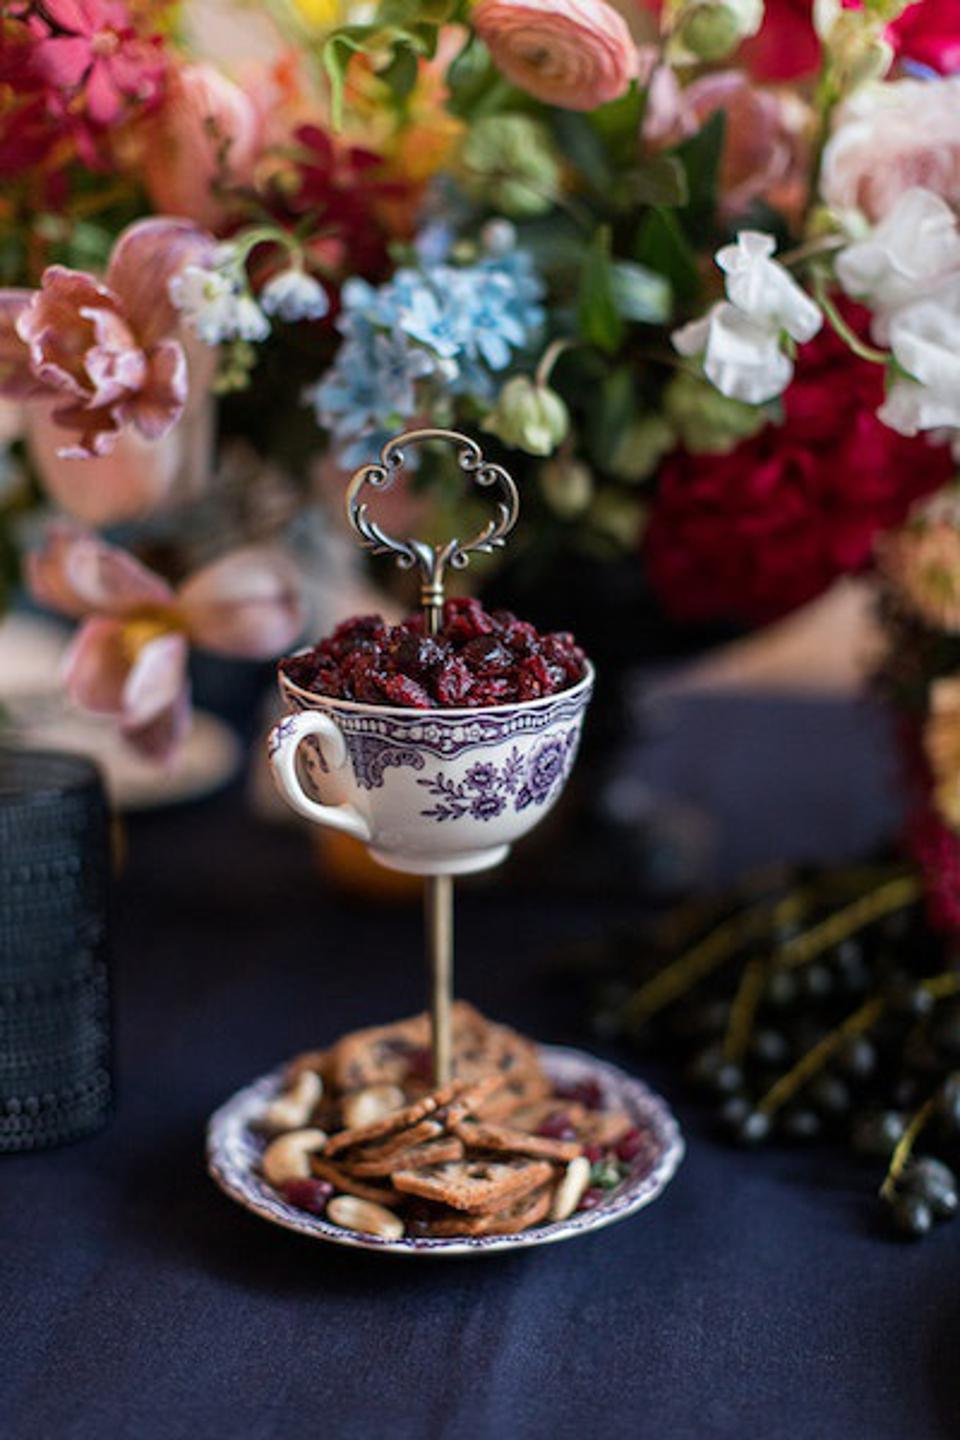 Upcycled china piece with nuts and dried cranberries